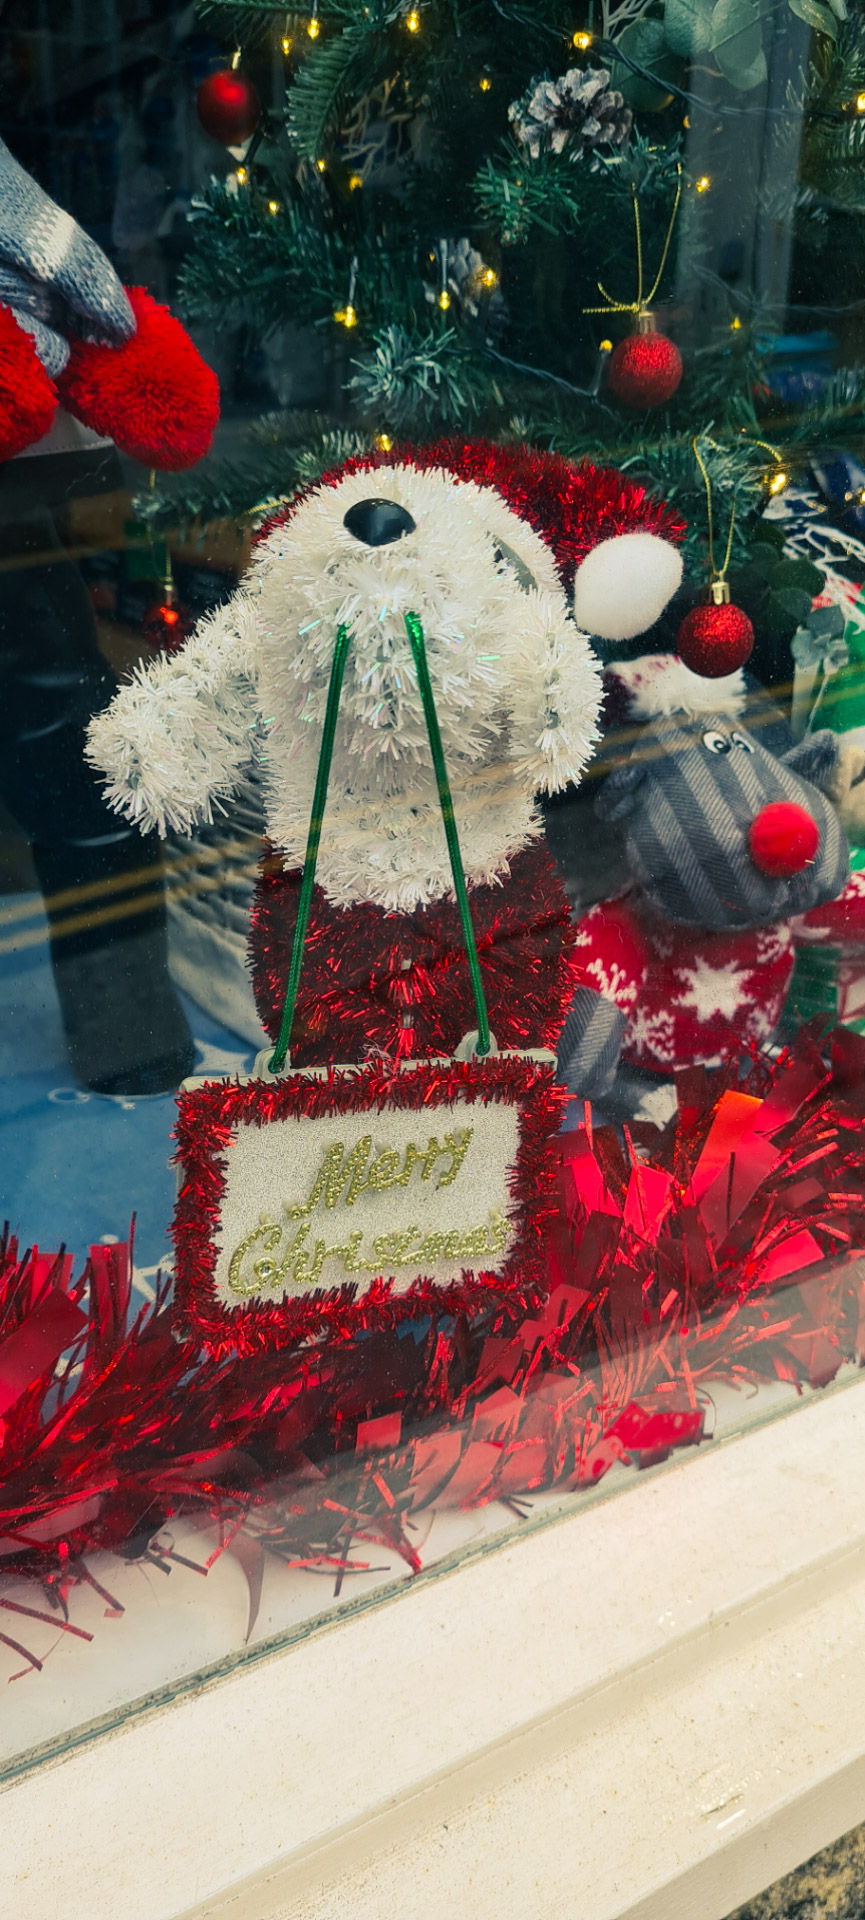 St Ives In December - Shop Window competition